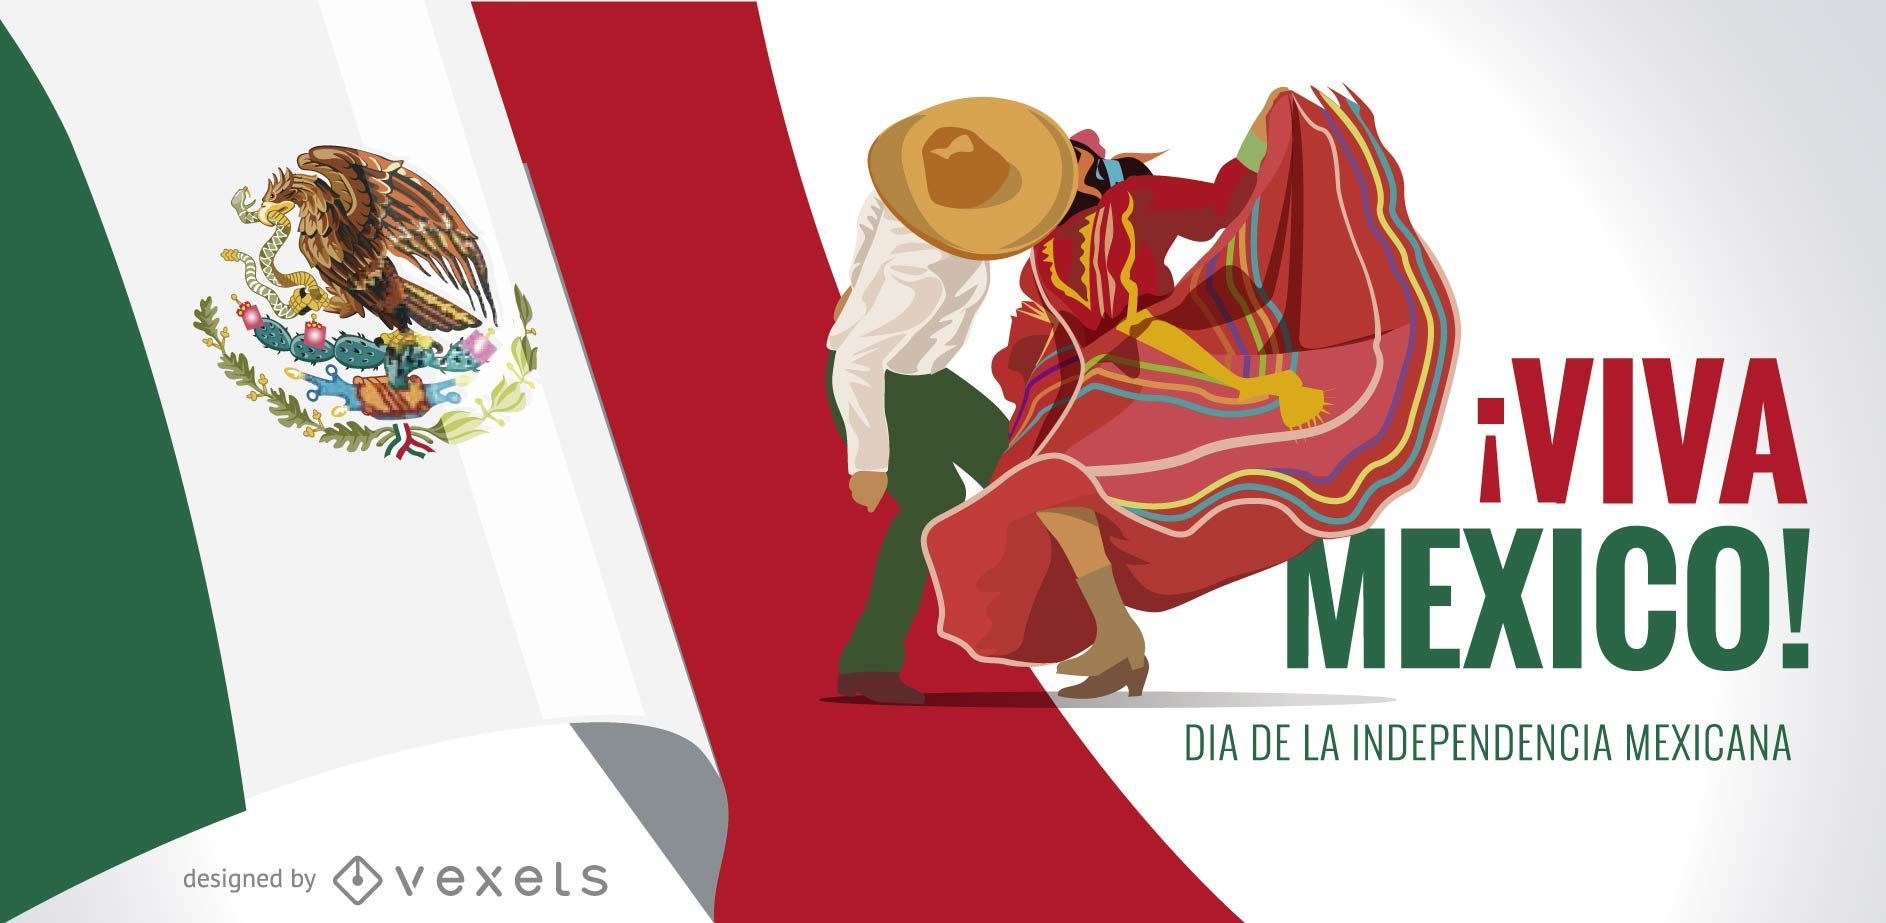 Viva Mexico Independence Day banner design